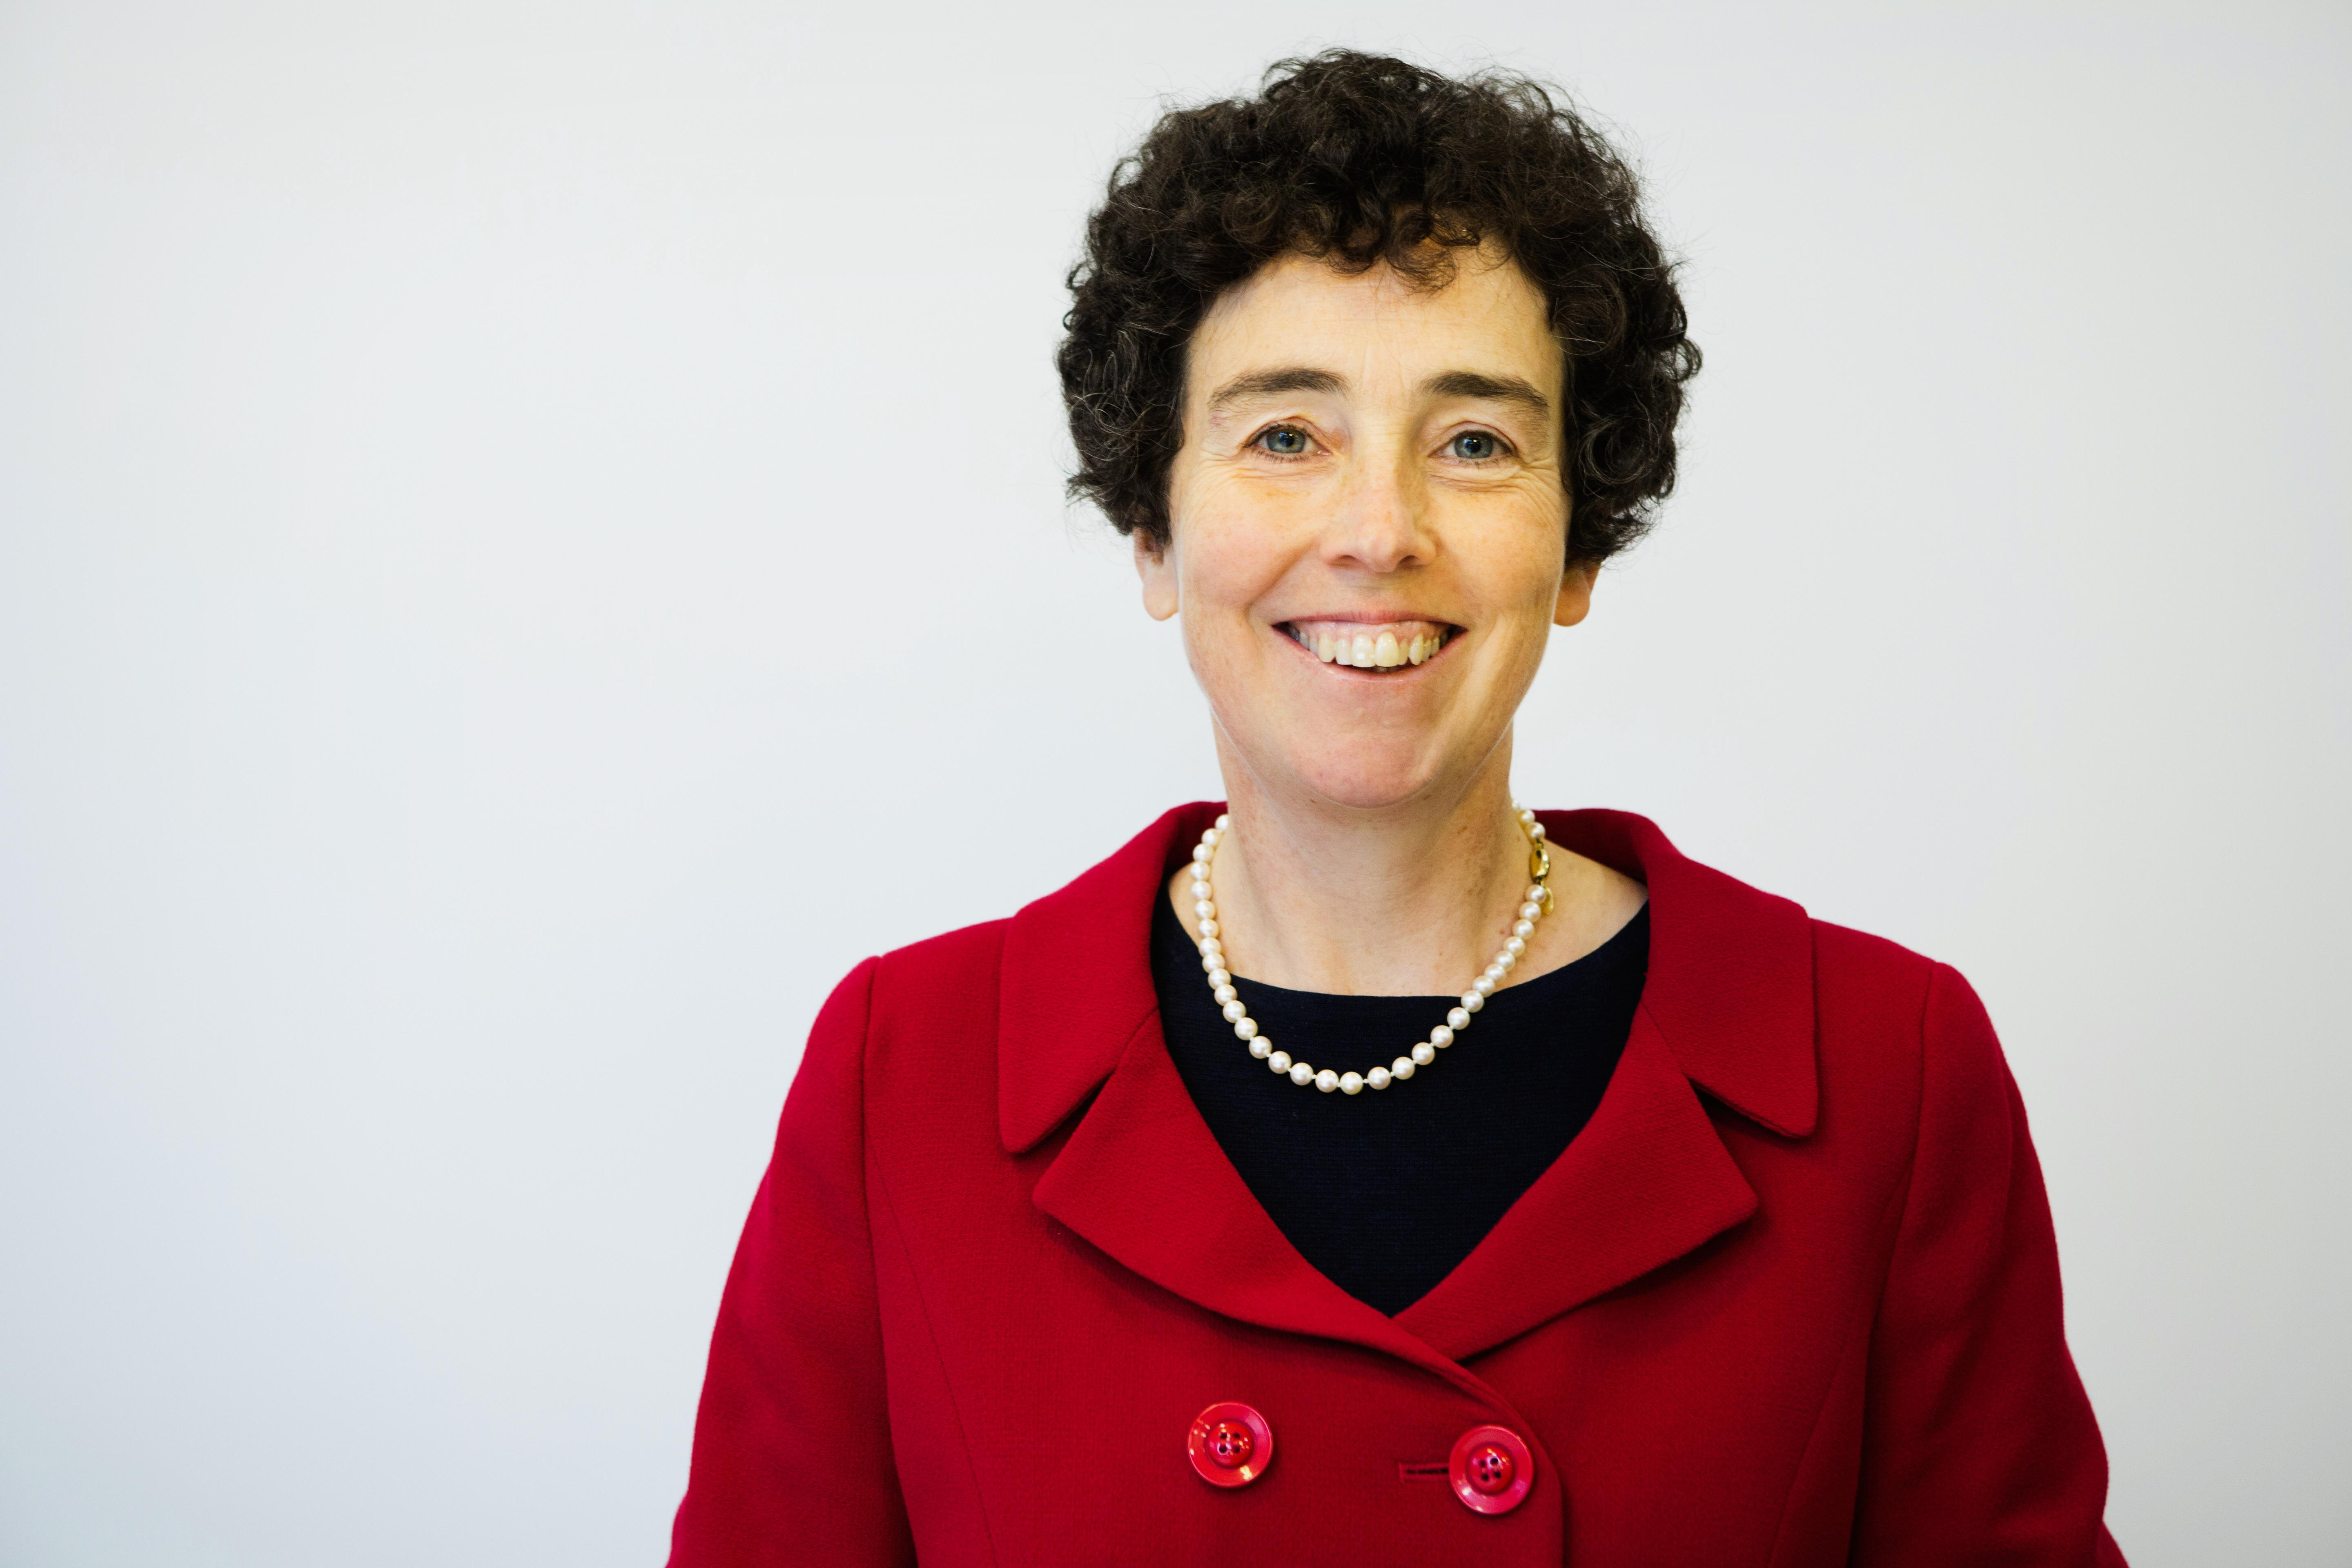 Blog by Head of Change and Knowledge Transfer - Nicola Pearson